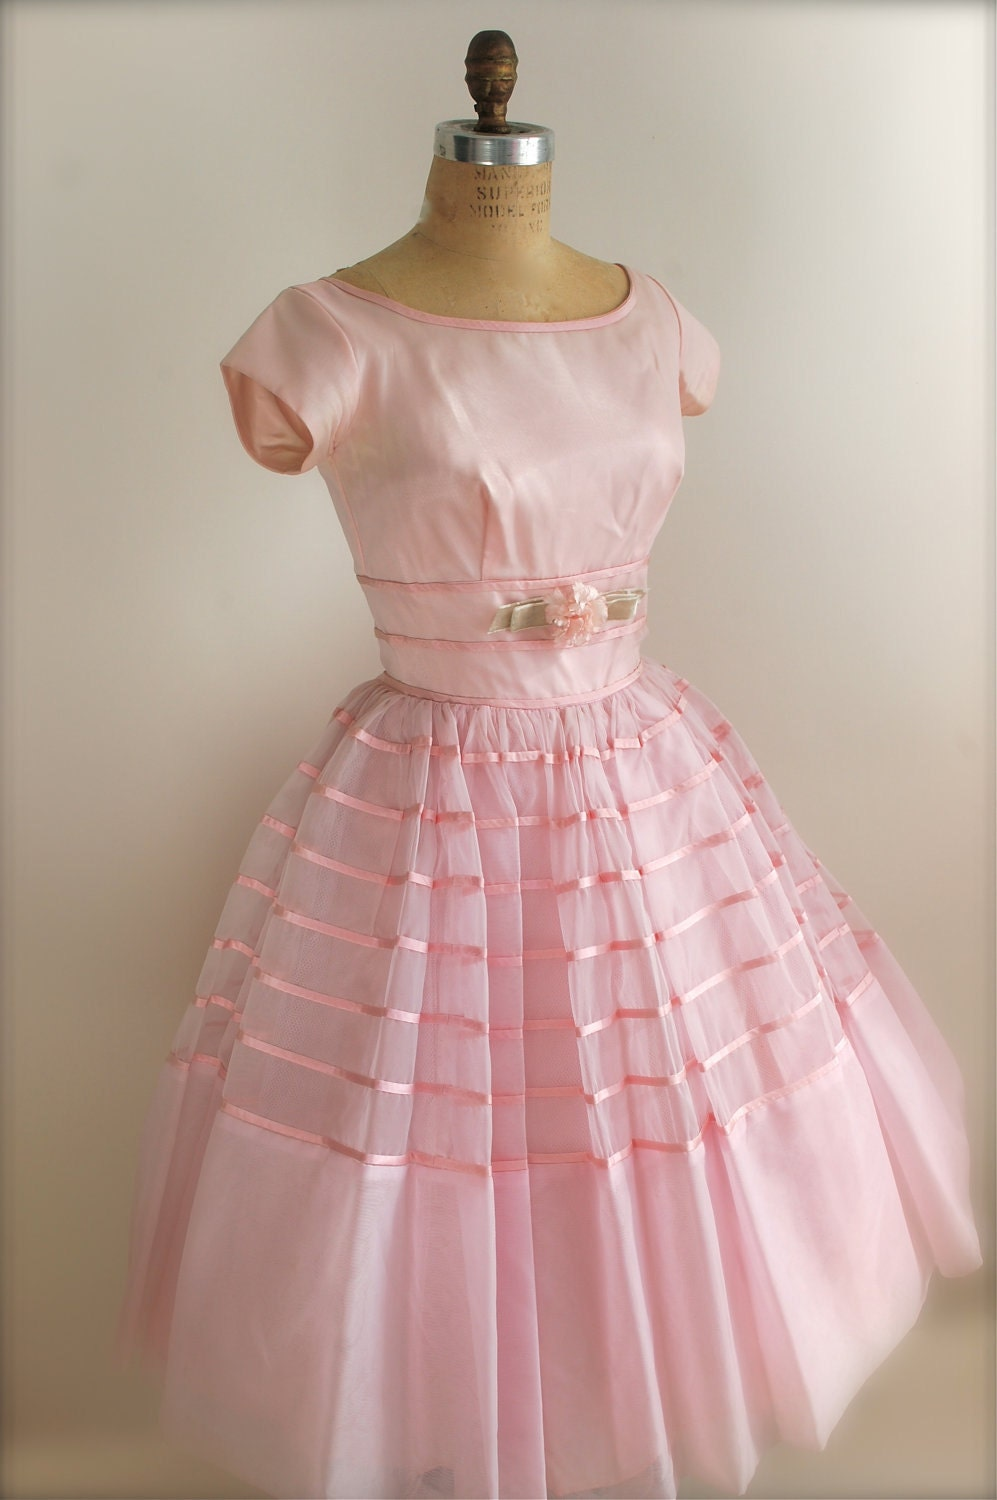 Vintage 1950s prom dress pink cocktail dress bridesmaid for Vintage sites like etsy